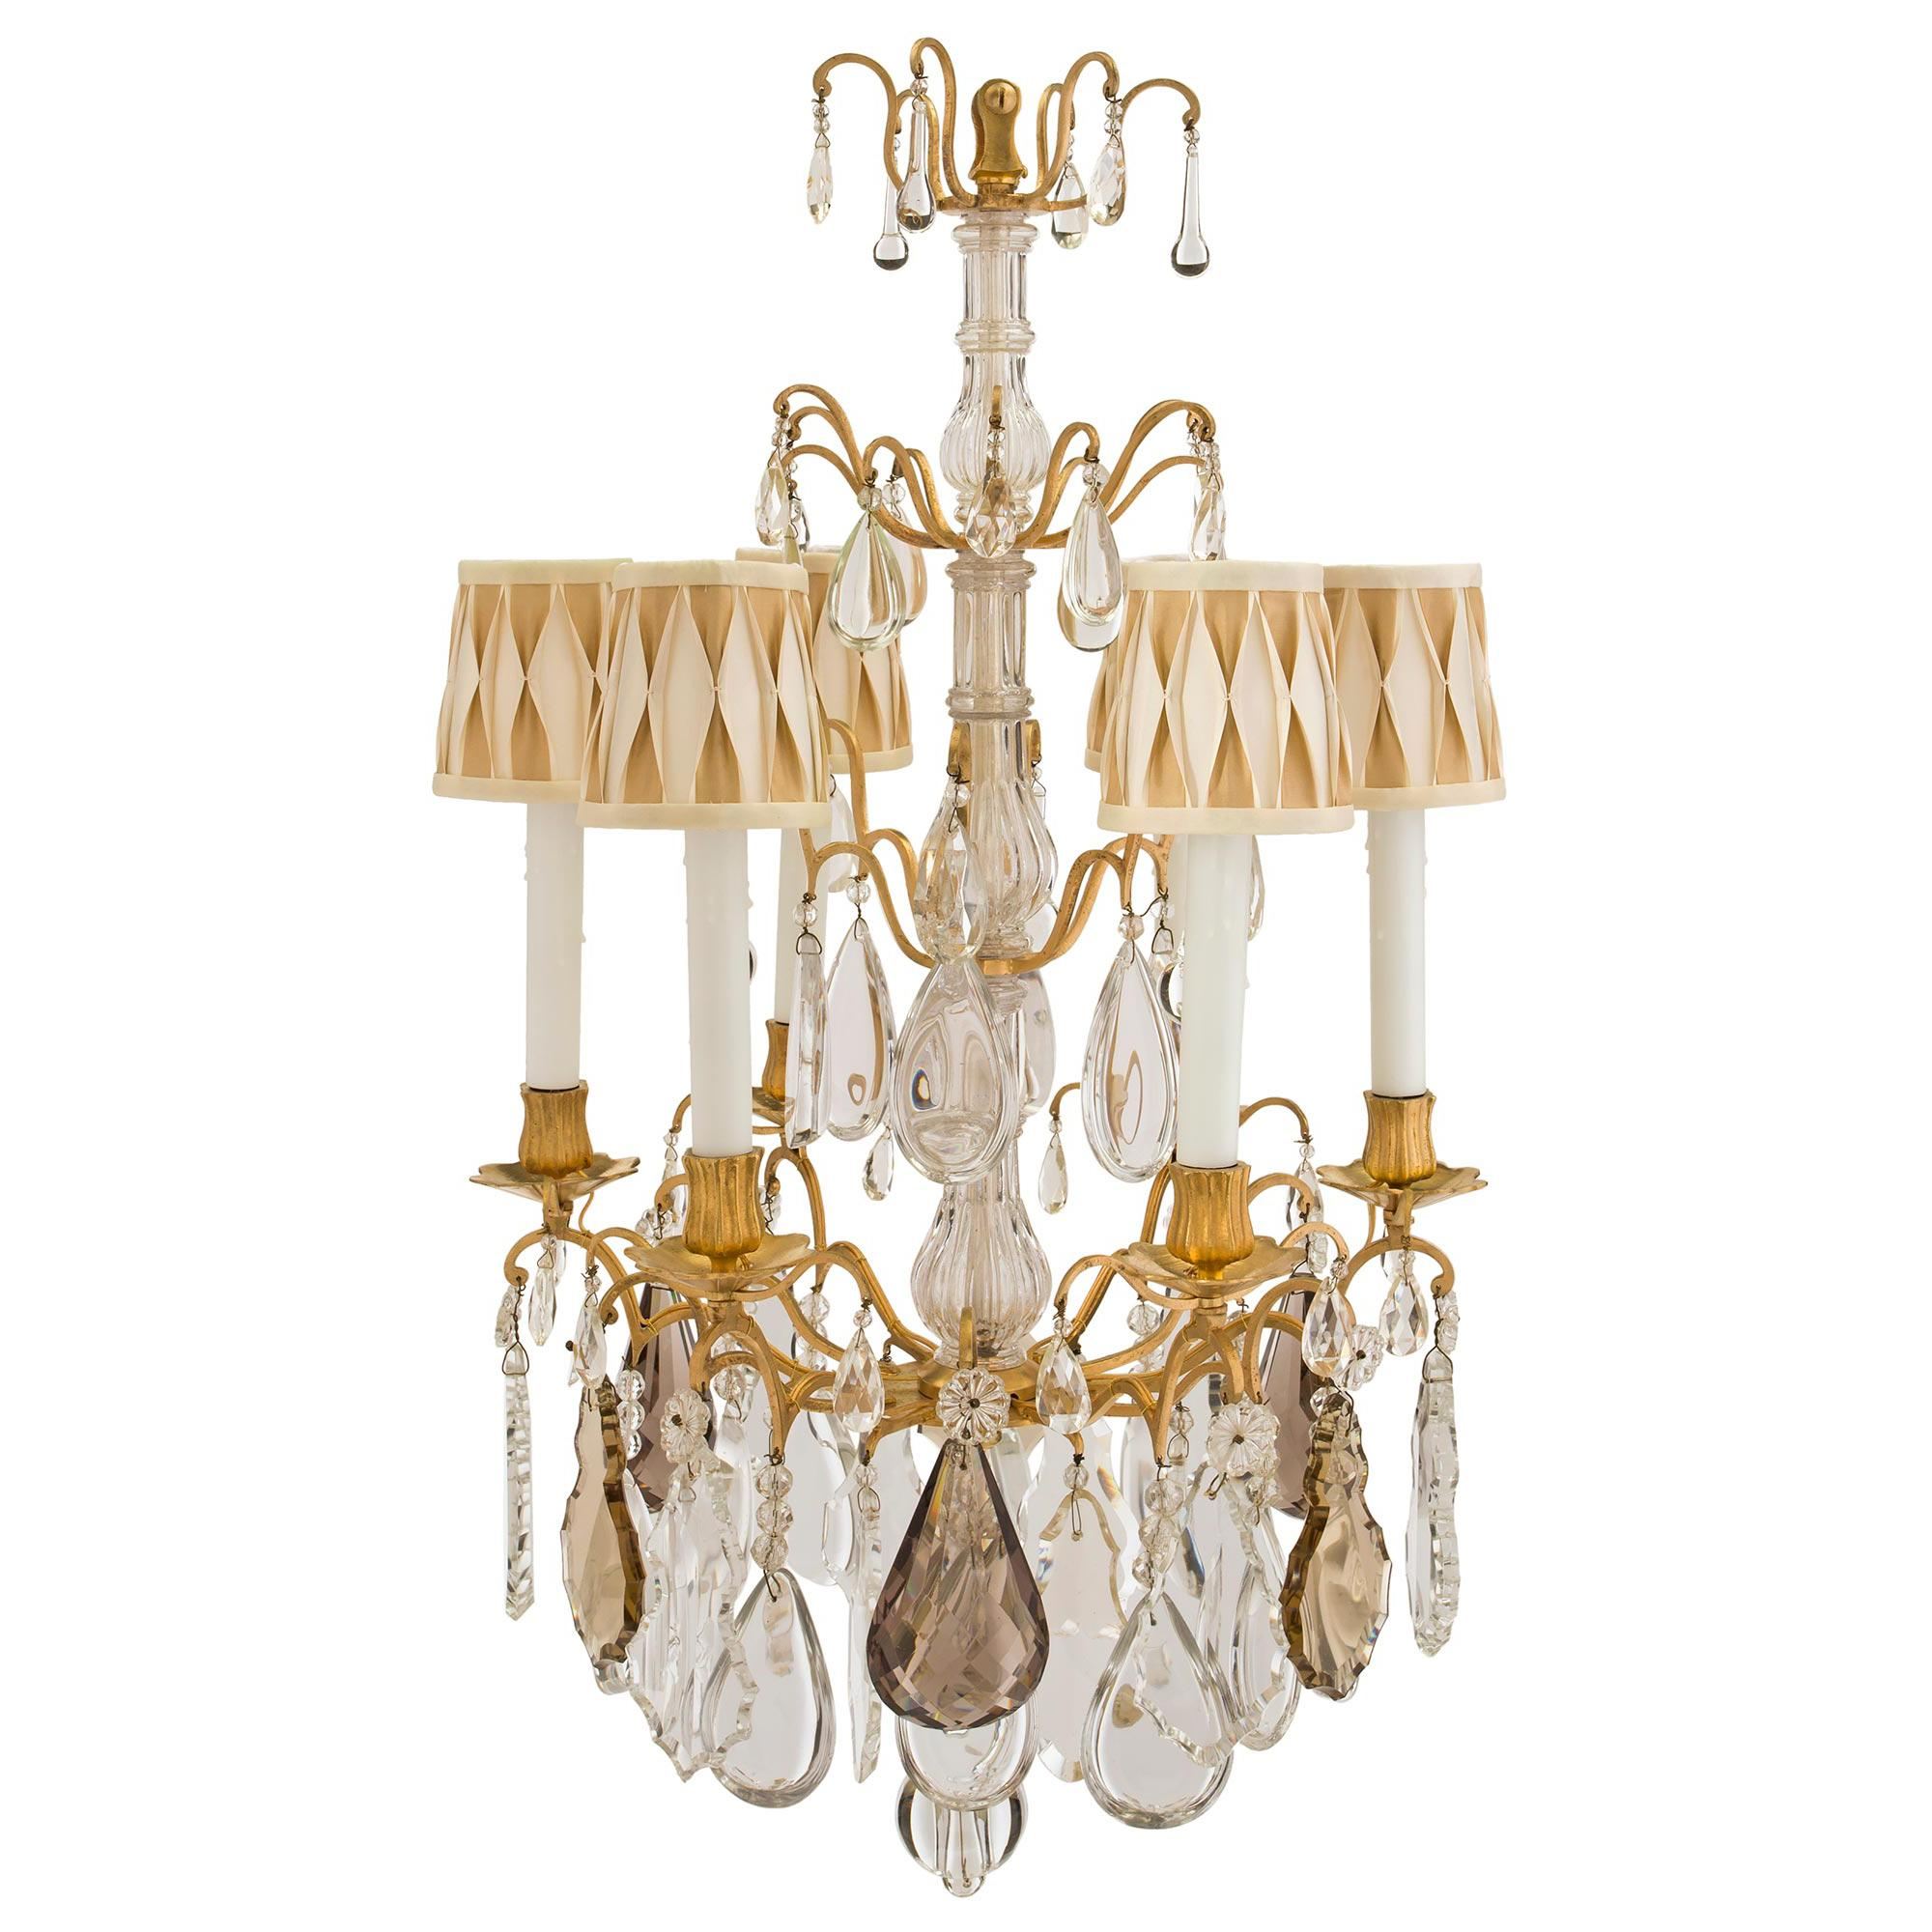 French Mid-19th Century Louis XV Style Baccarat Crystal and Ormolu Chandelier